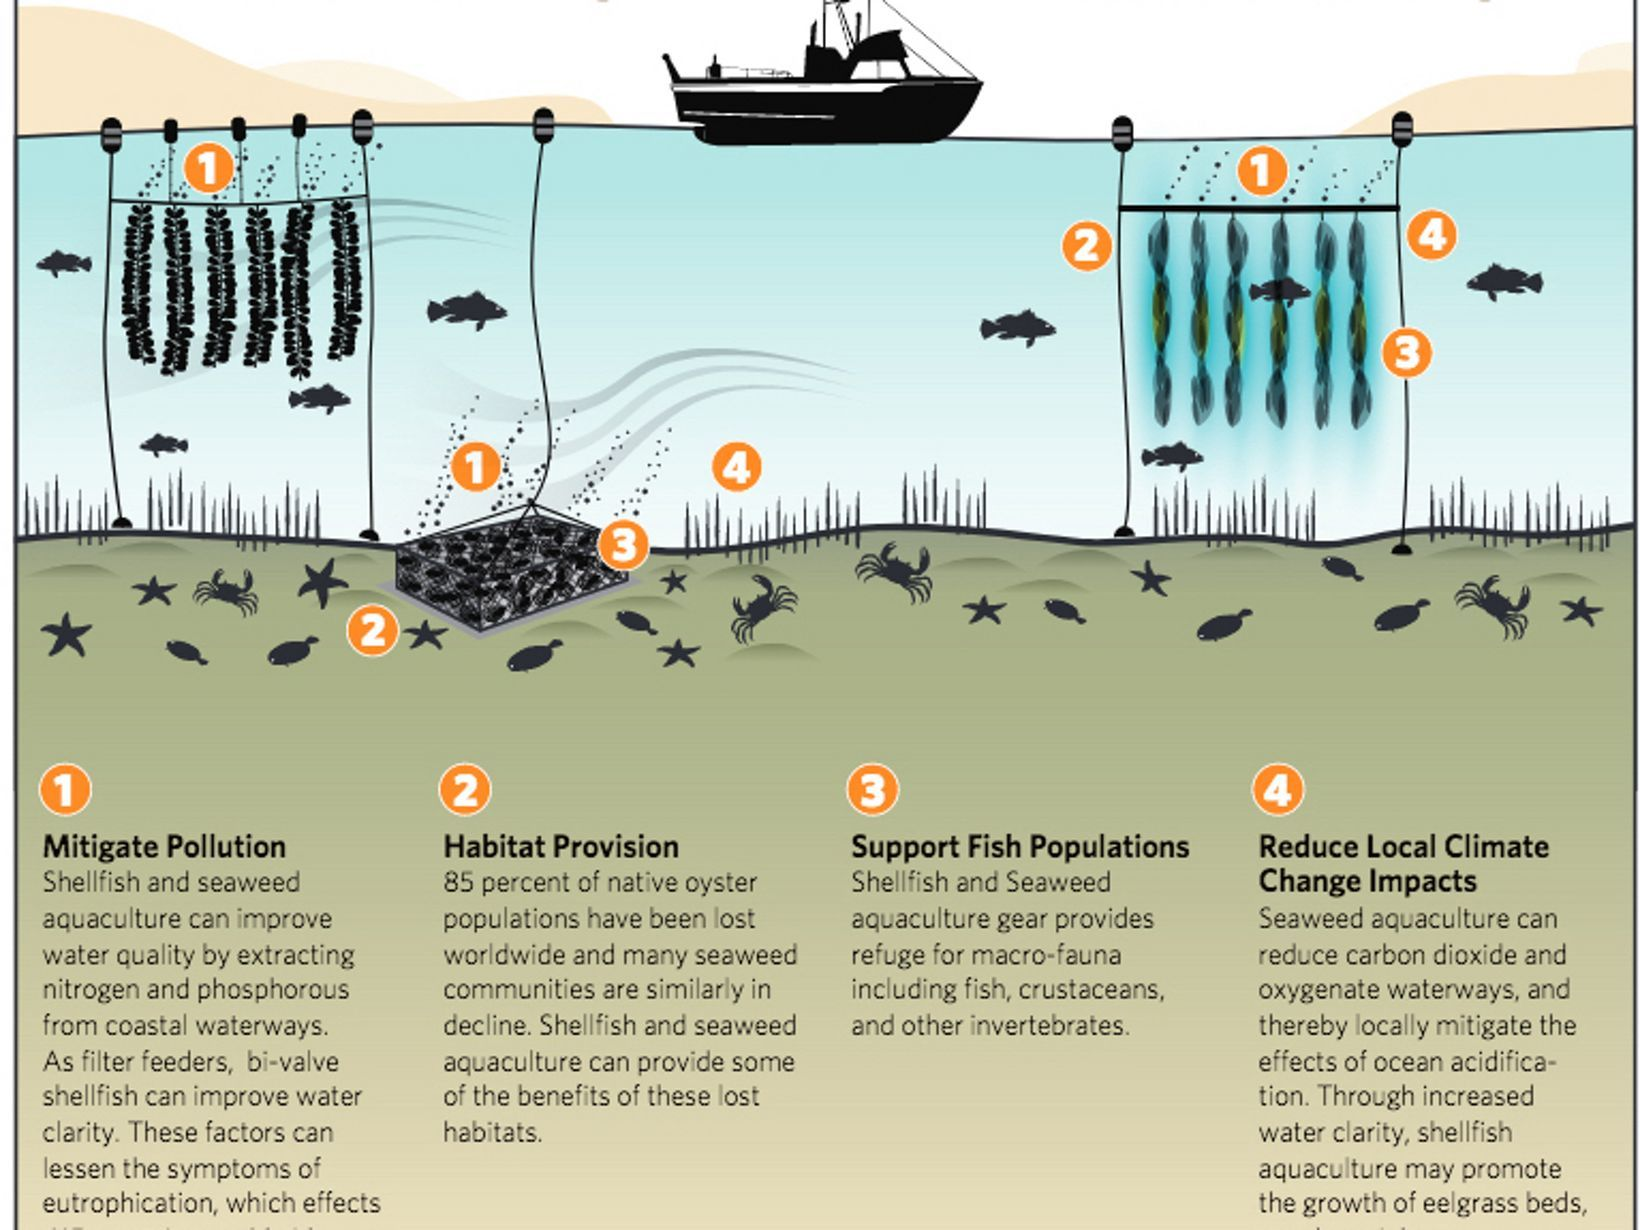 Ecosystems Benefits Of Aquaculture Infographic Aquaculture Farming Technology Fish Ponds